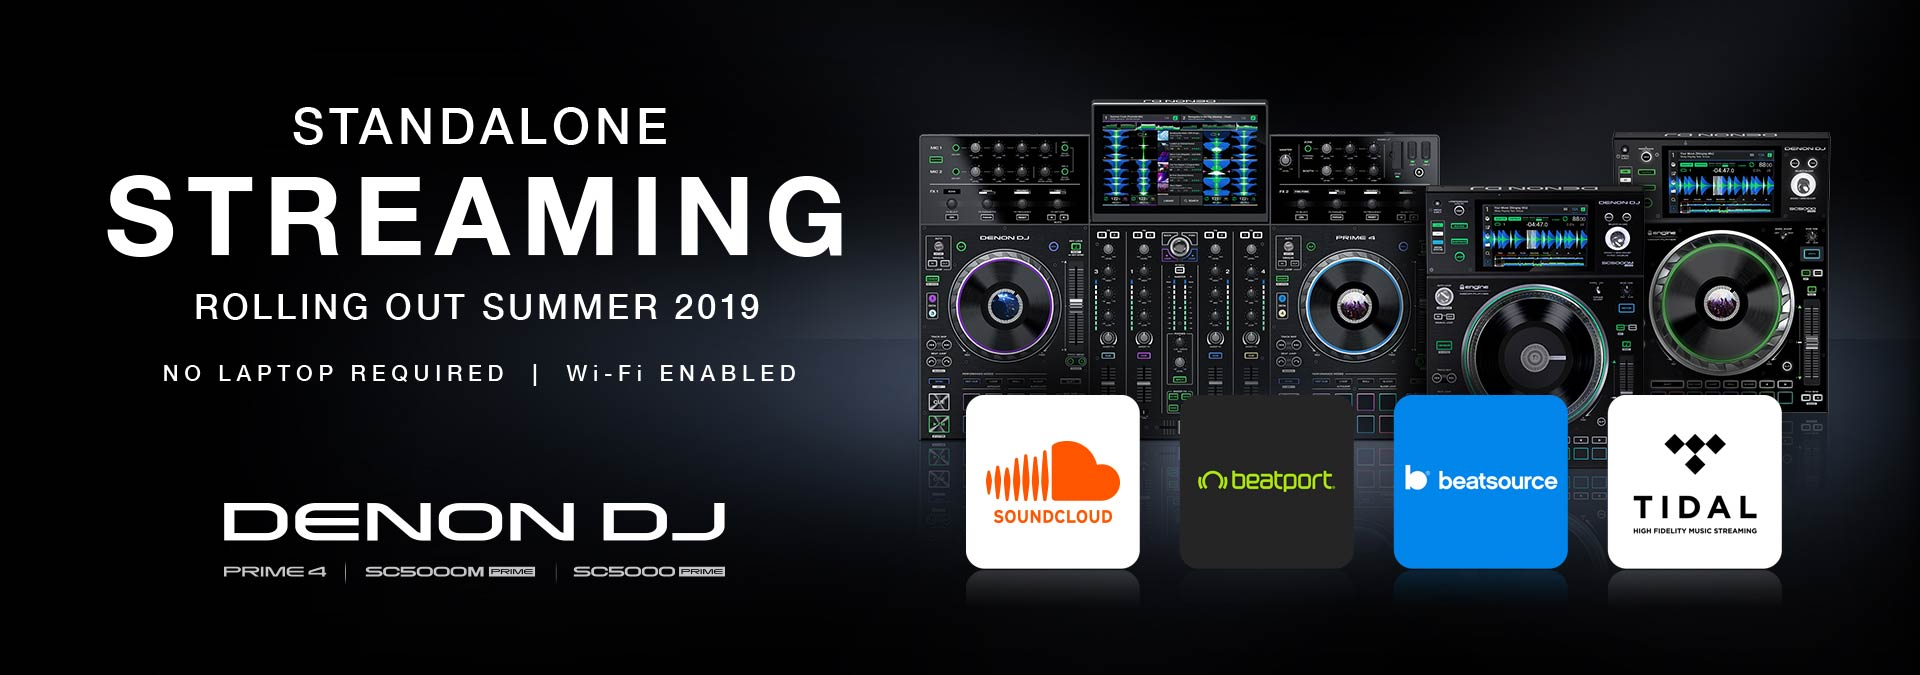 Denon DJ announces world's first streaming capability in standalone DJ hardware